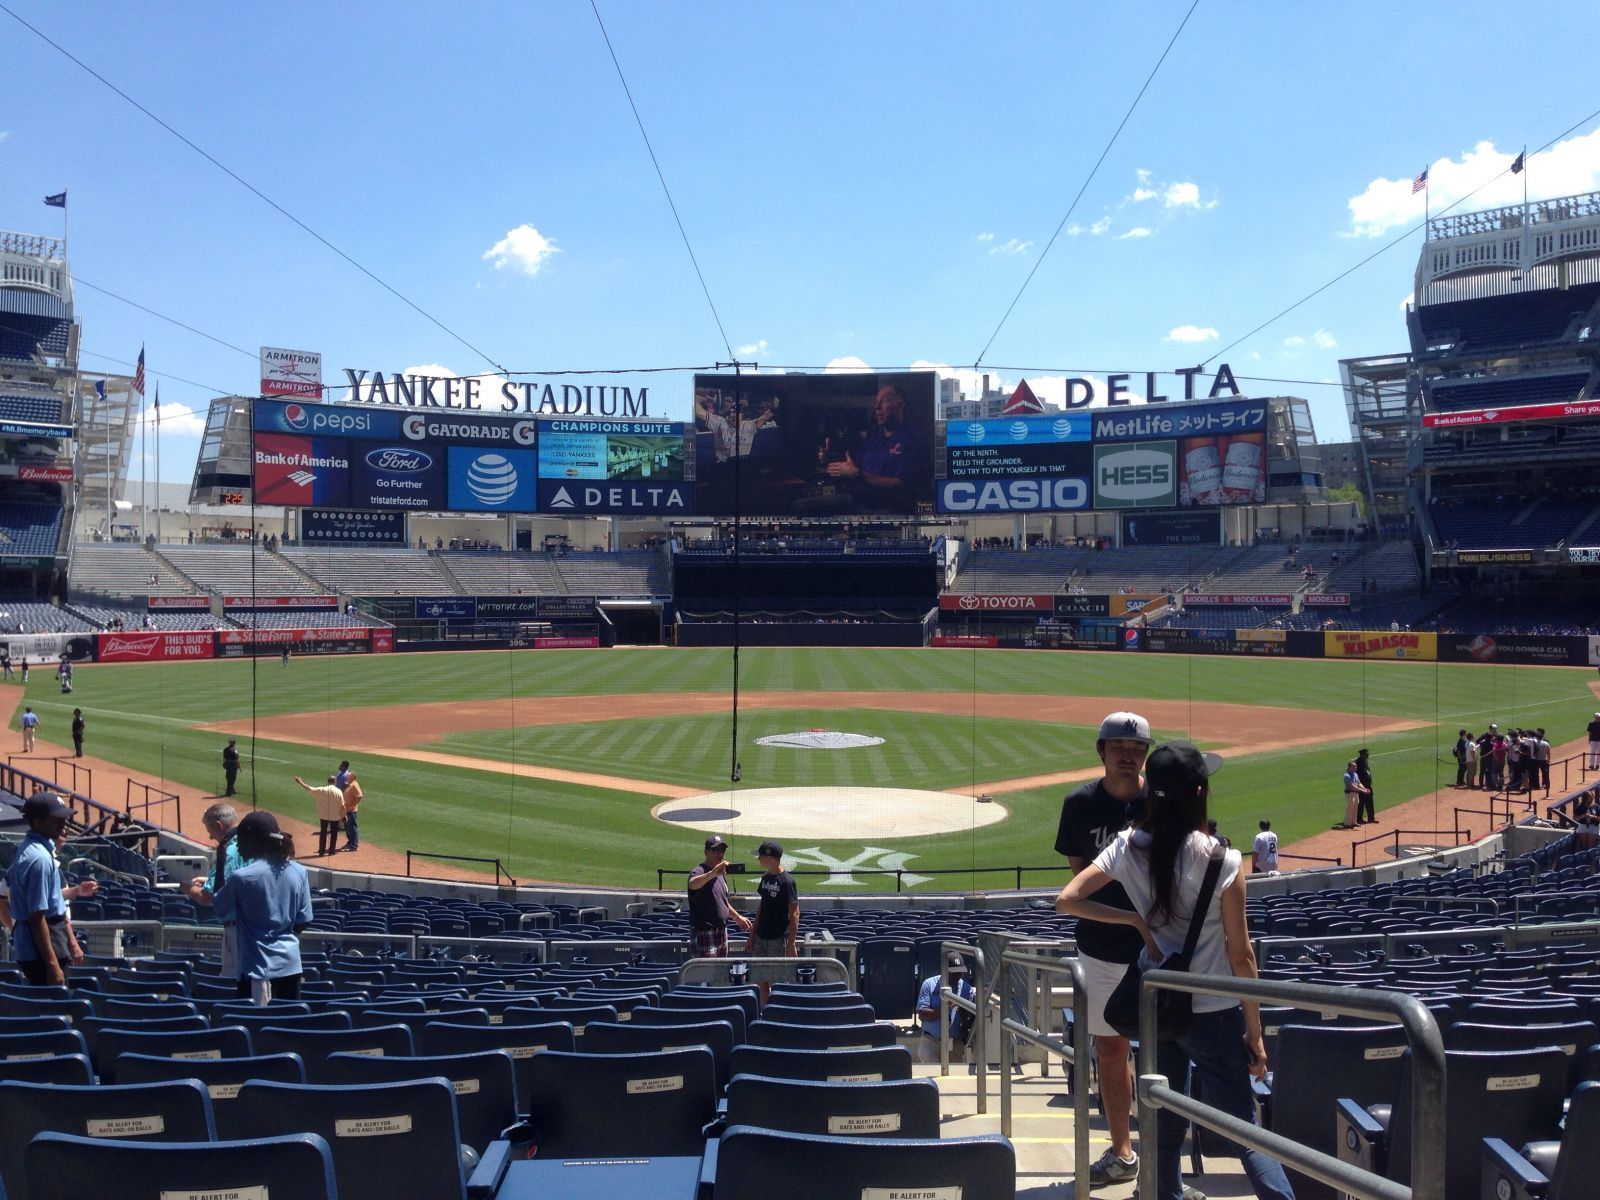 New York Yankees Seat View for Yankee Stadium Section 120B, Row 15, Seat 1